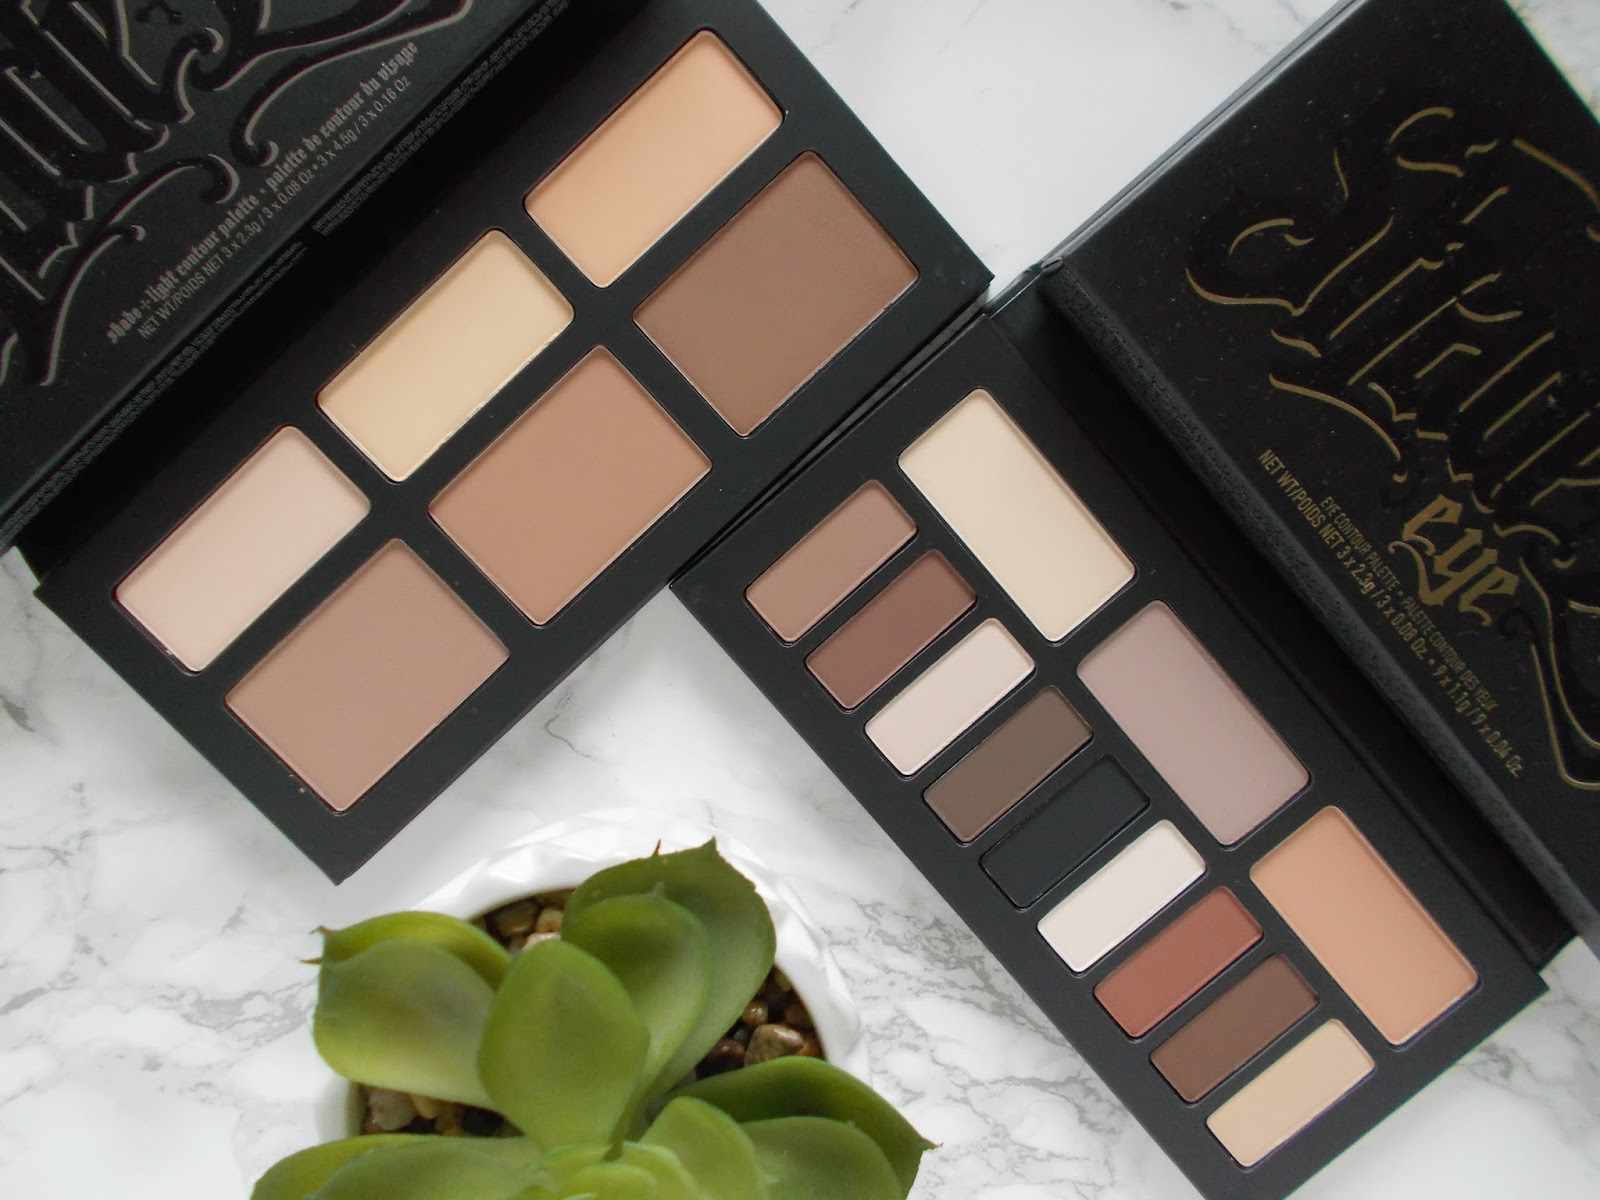 Kat Von D Shade and Light eye and contour palette review